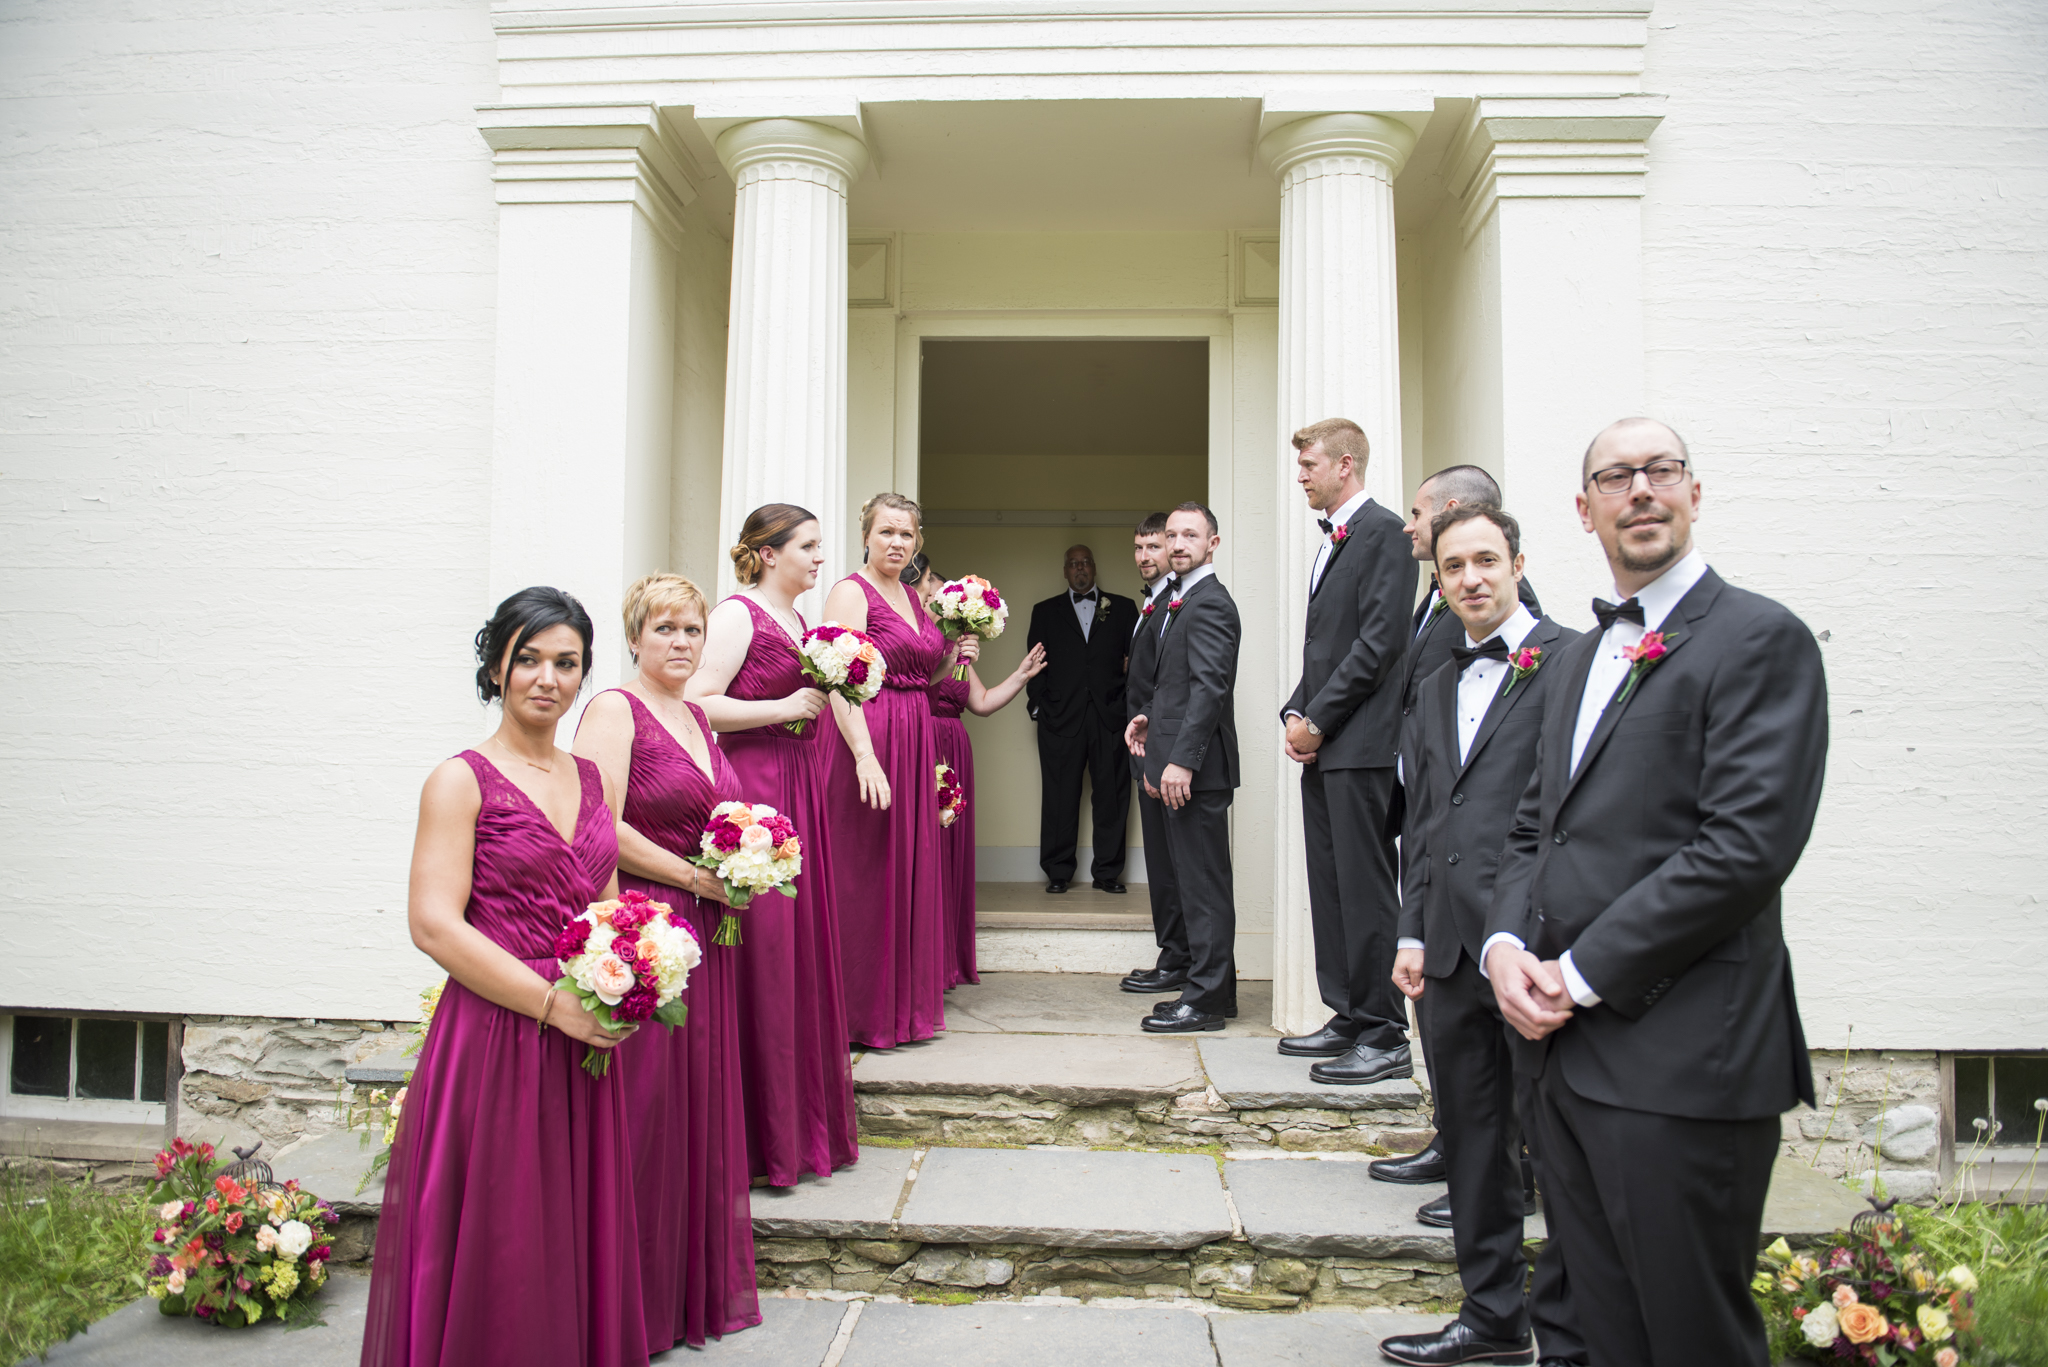 JC-Wedding-Online-Ceremony-7.jpg